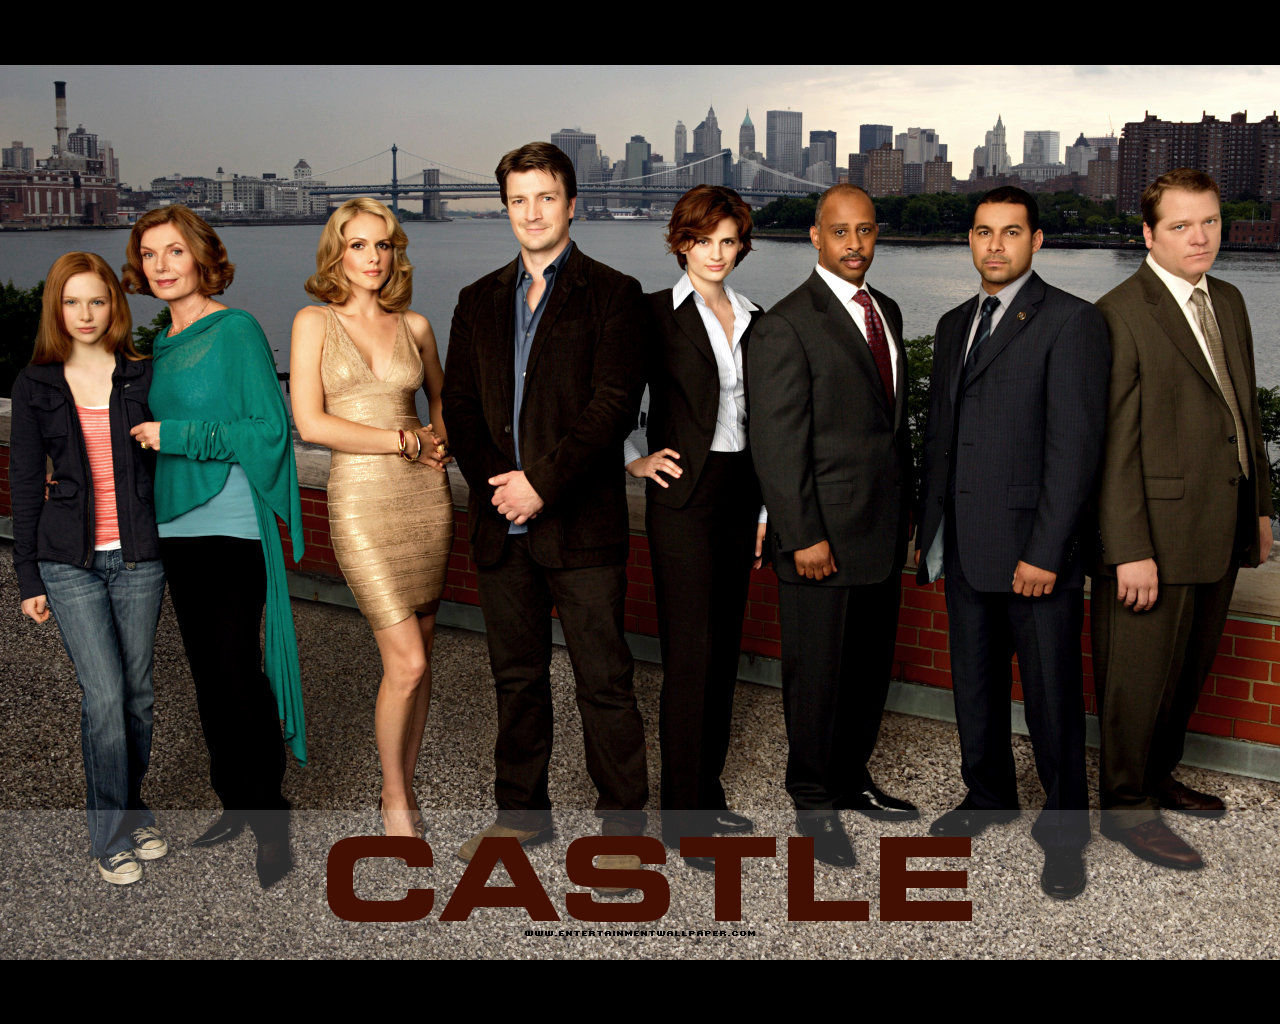 Free download castle tv show wallpaper id:101036 hd 1920x1080 for pc.